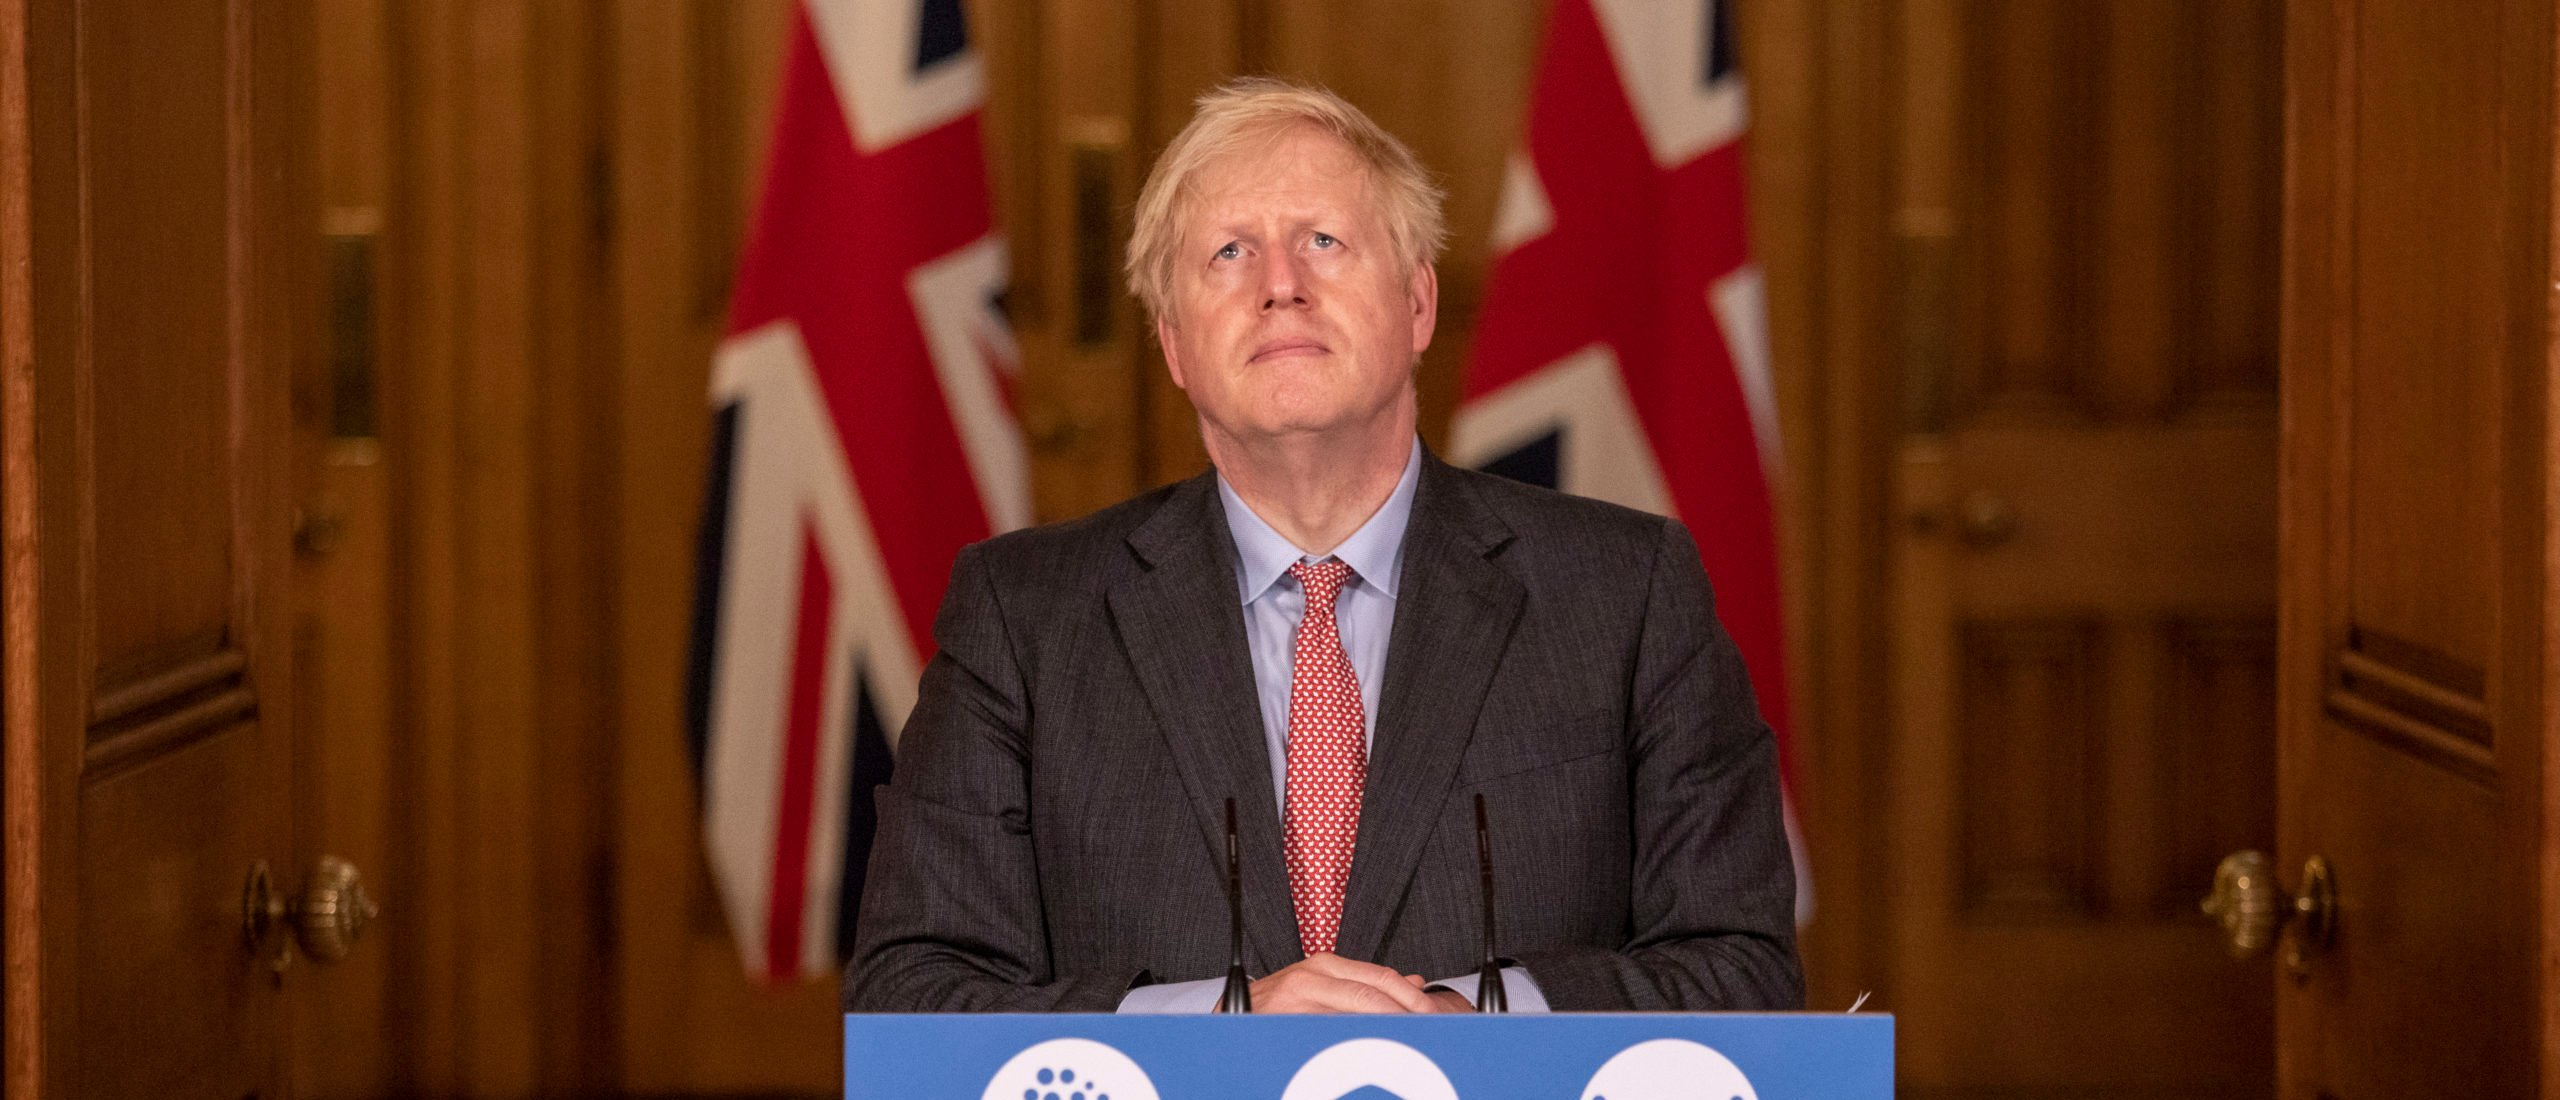 UK Prime Minister Boris Johnson addresses the nation during a remote press conference at Downing Street on September 30, 2020 in London, England. (Photo by Jack Hill - WPA Pool/Getty Images)